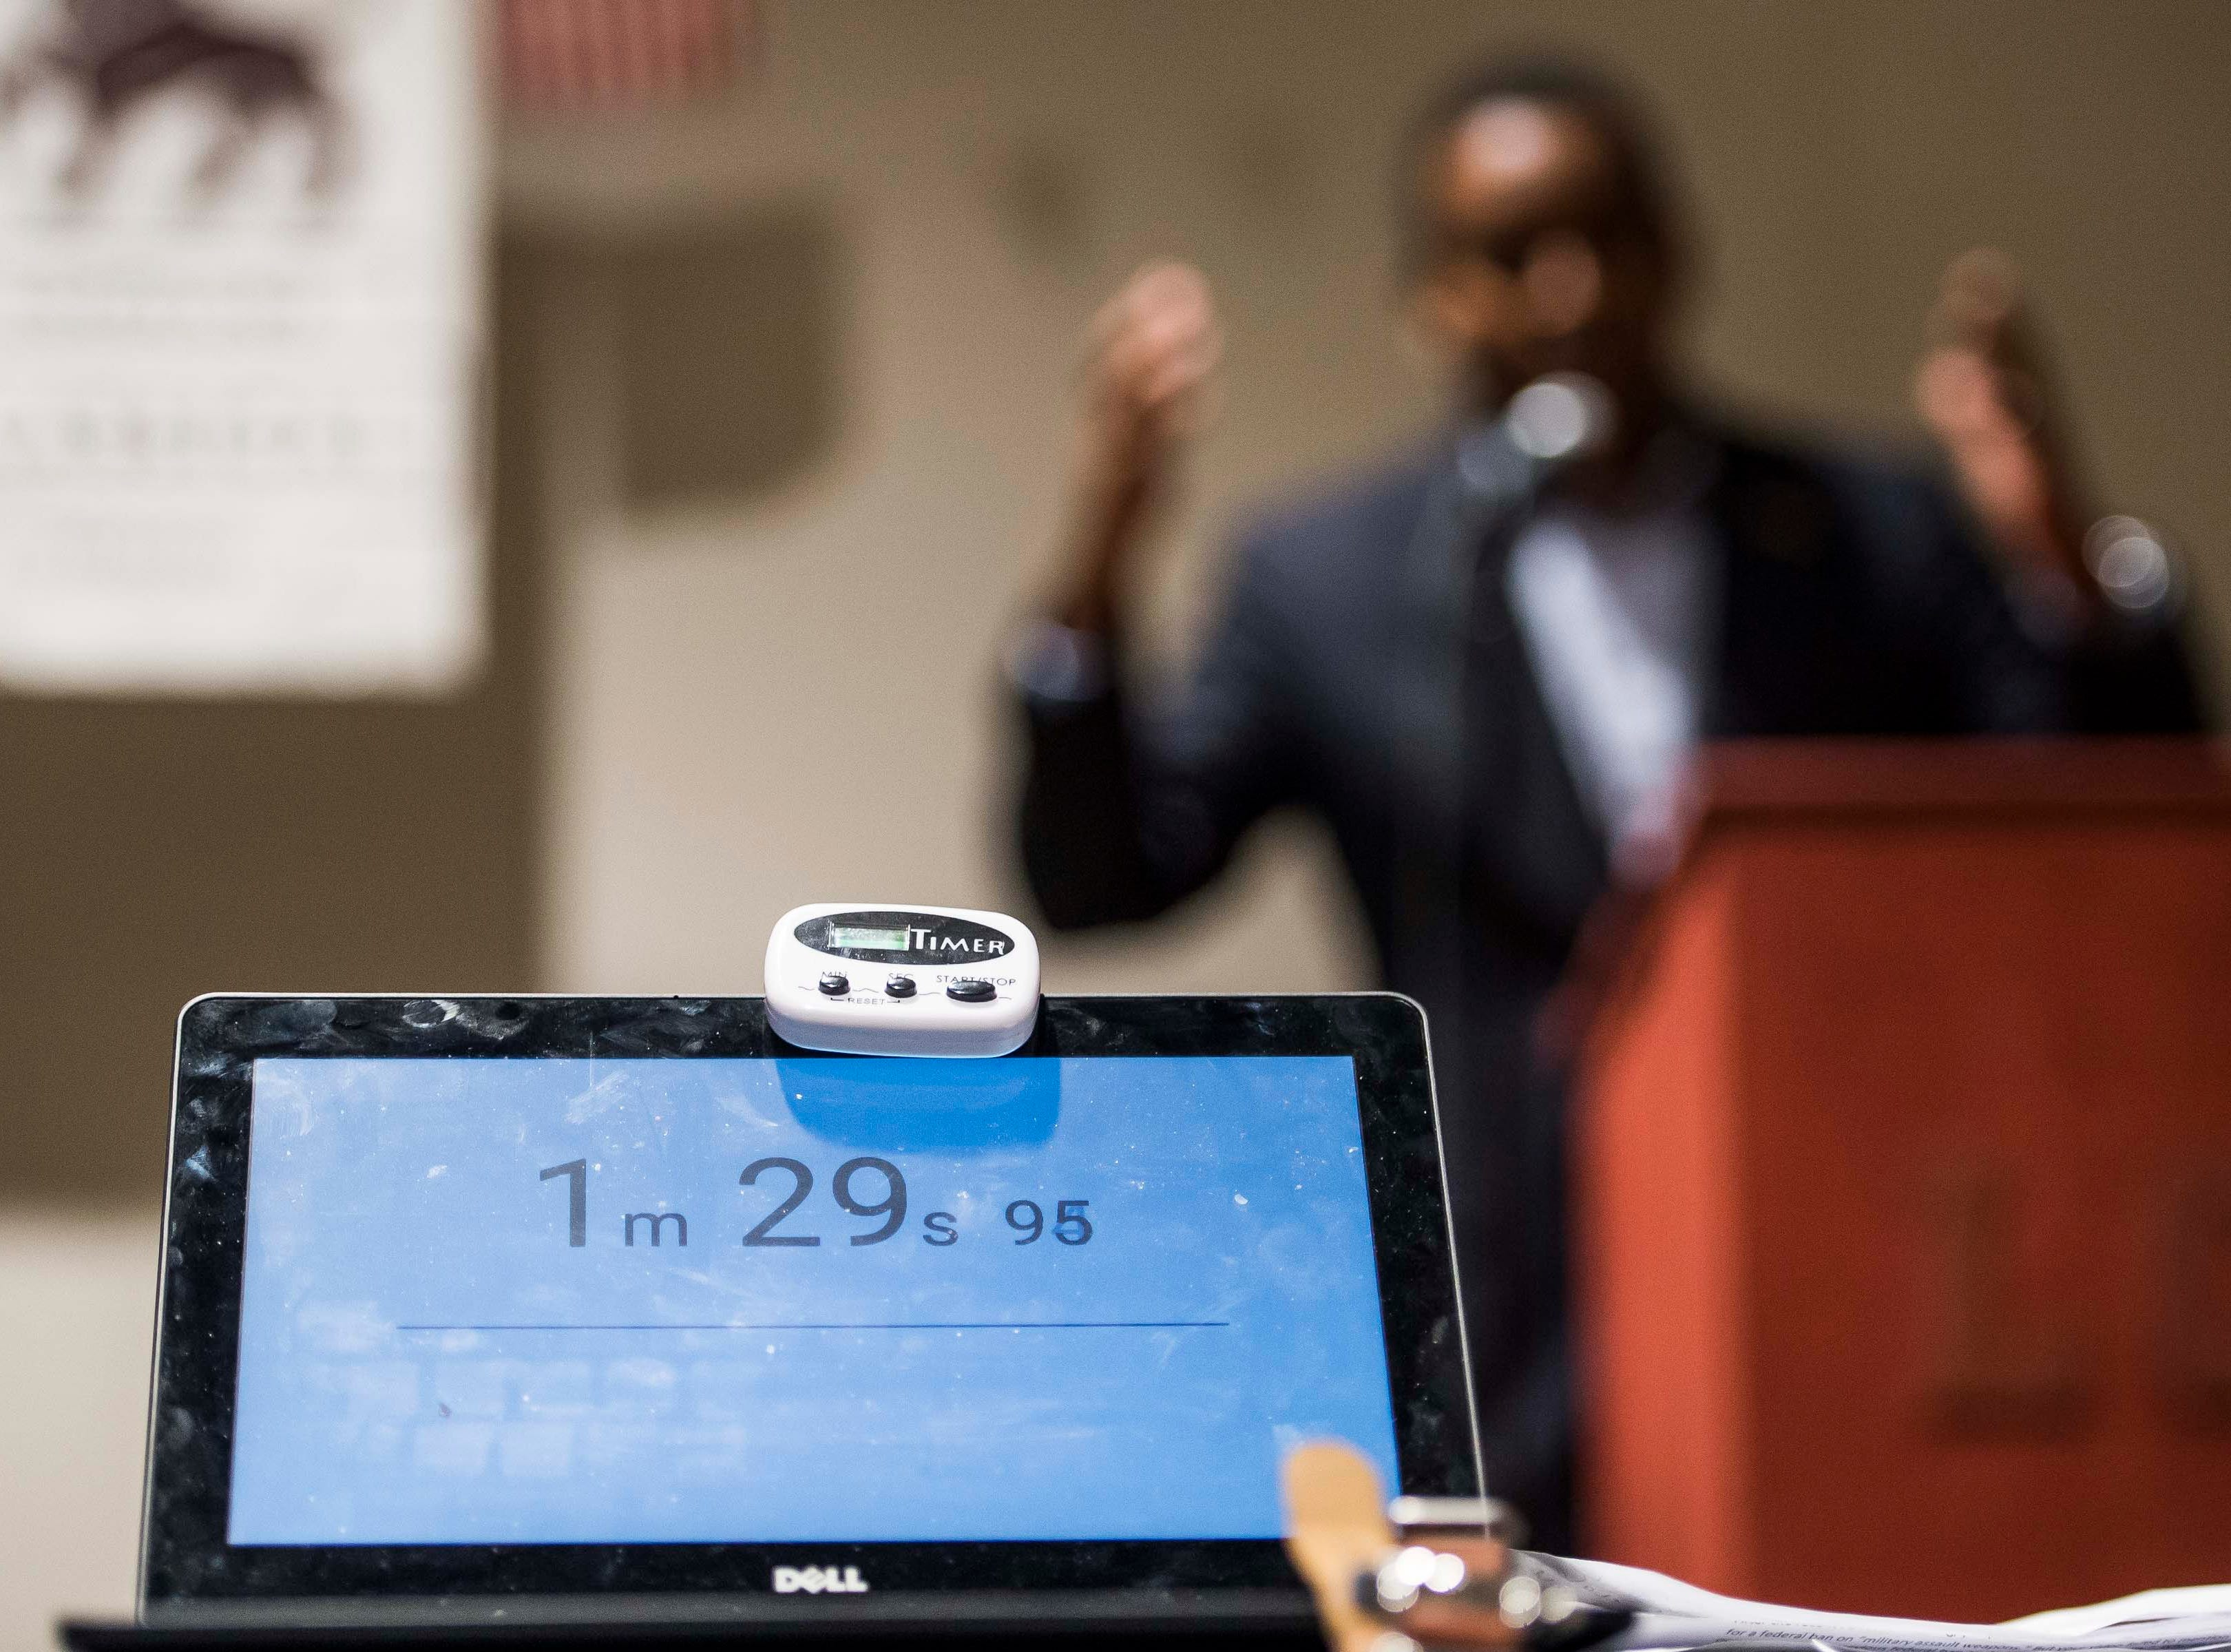 The timer runs as Colorado's 2nd Congressional District Democratic nominee Joe Neguse, right, participates in a debate with Republican nominee Peter Yu on Wednesday, Sept. 26, 2018, at the Loveland Classical Schools in Loveland, Colo.